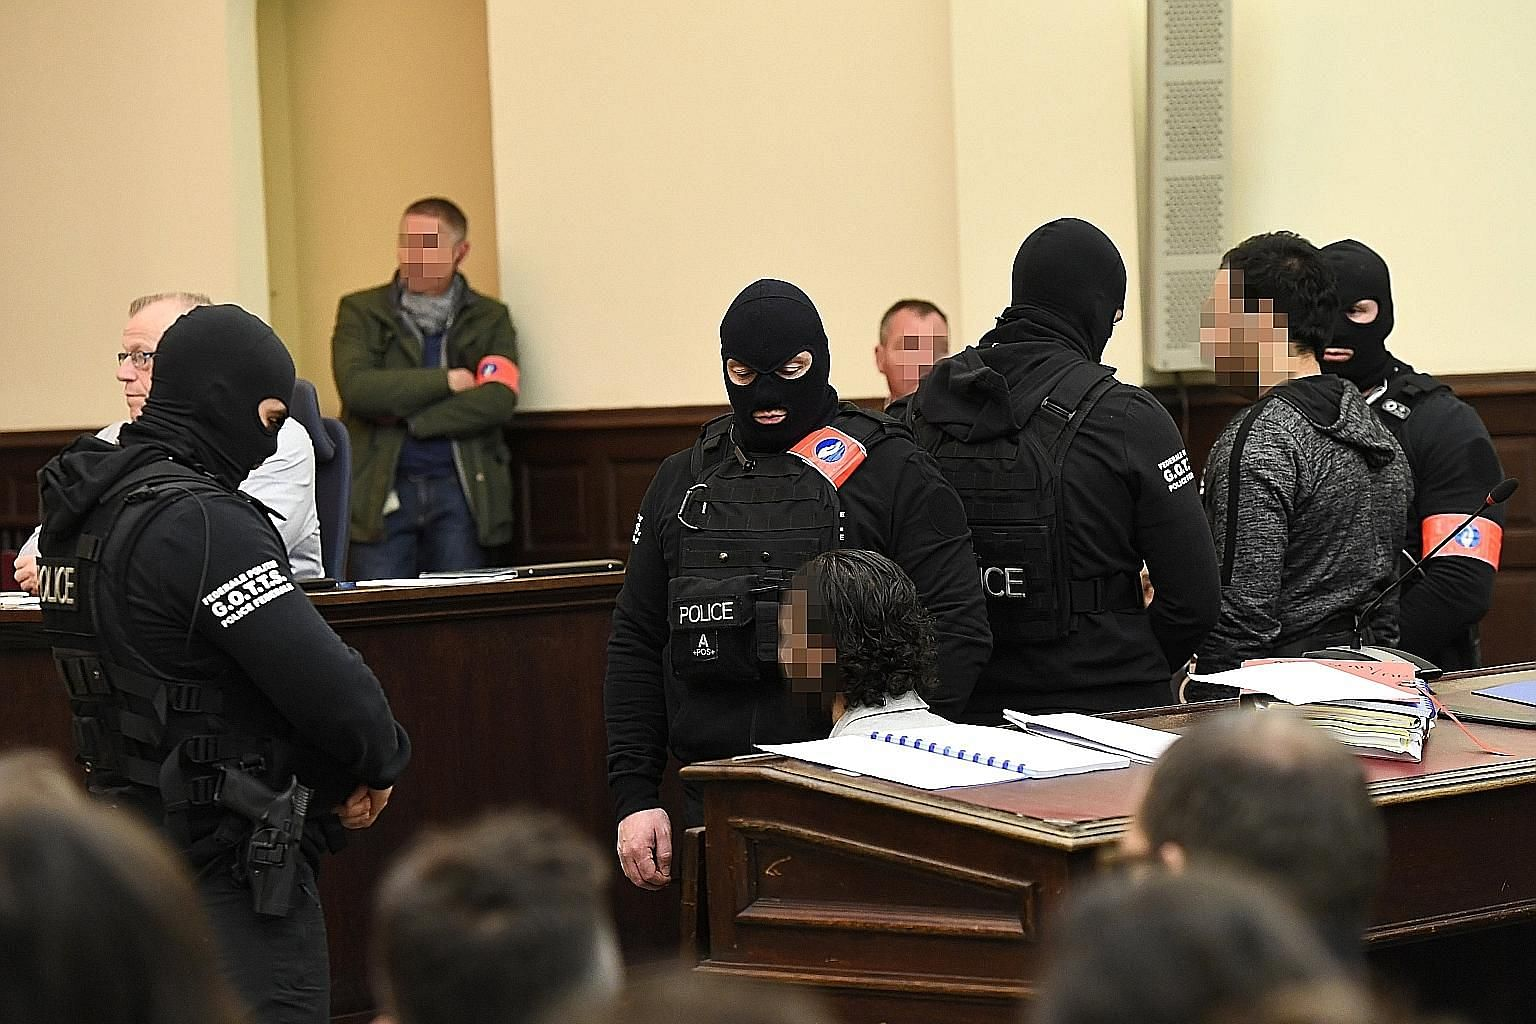 Salah Abdeslam, the prime surviving suspect in the November 2015 terror attacks on Paris, in court in Brussels yesterday. The trial relates only to the March 2016 shoot-out with police in the southern Brussels borough of Forest. Citing his right to s